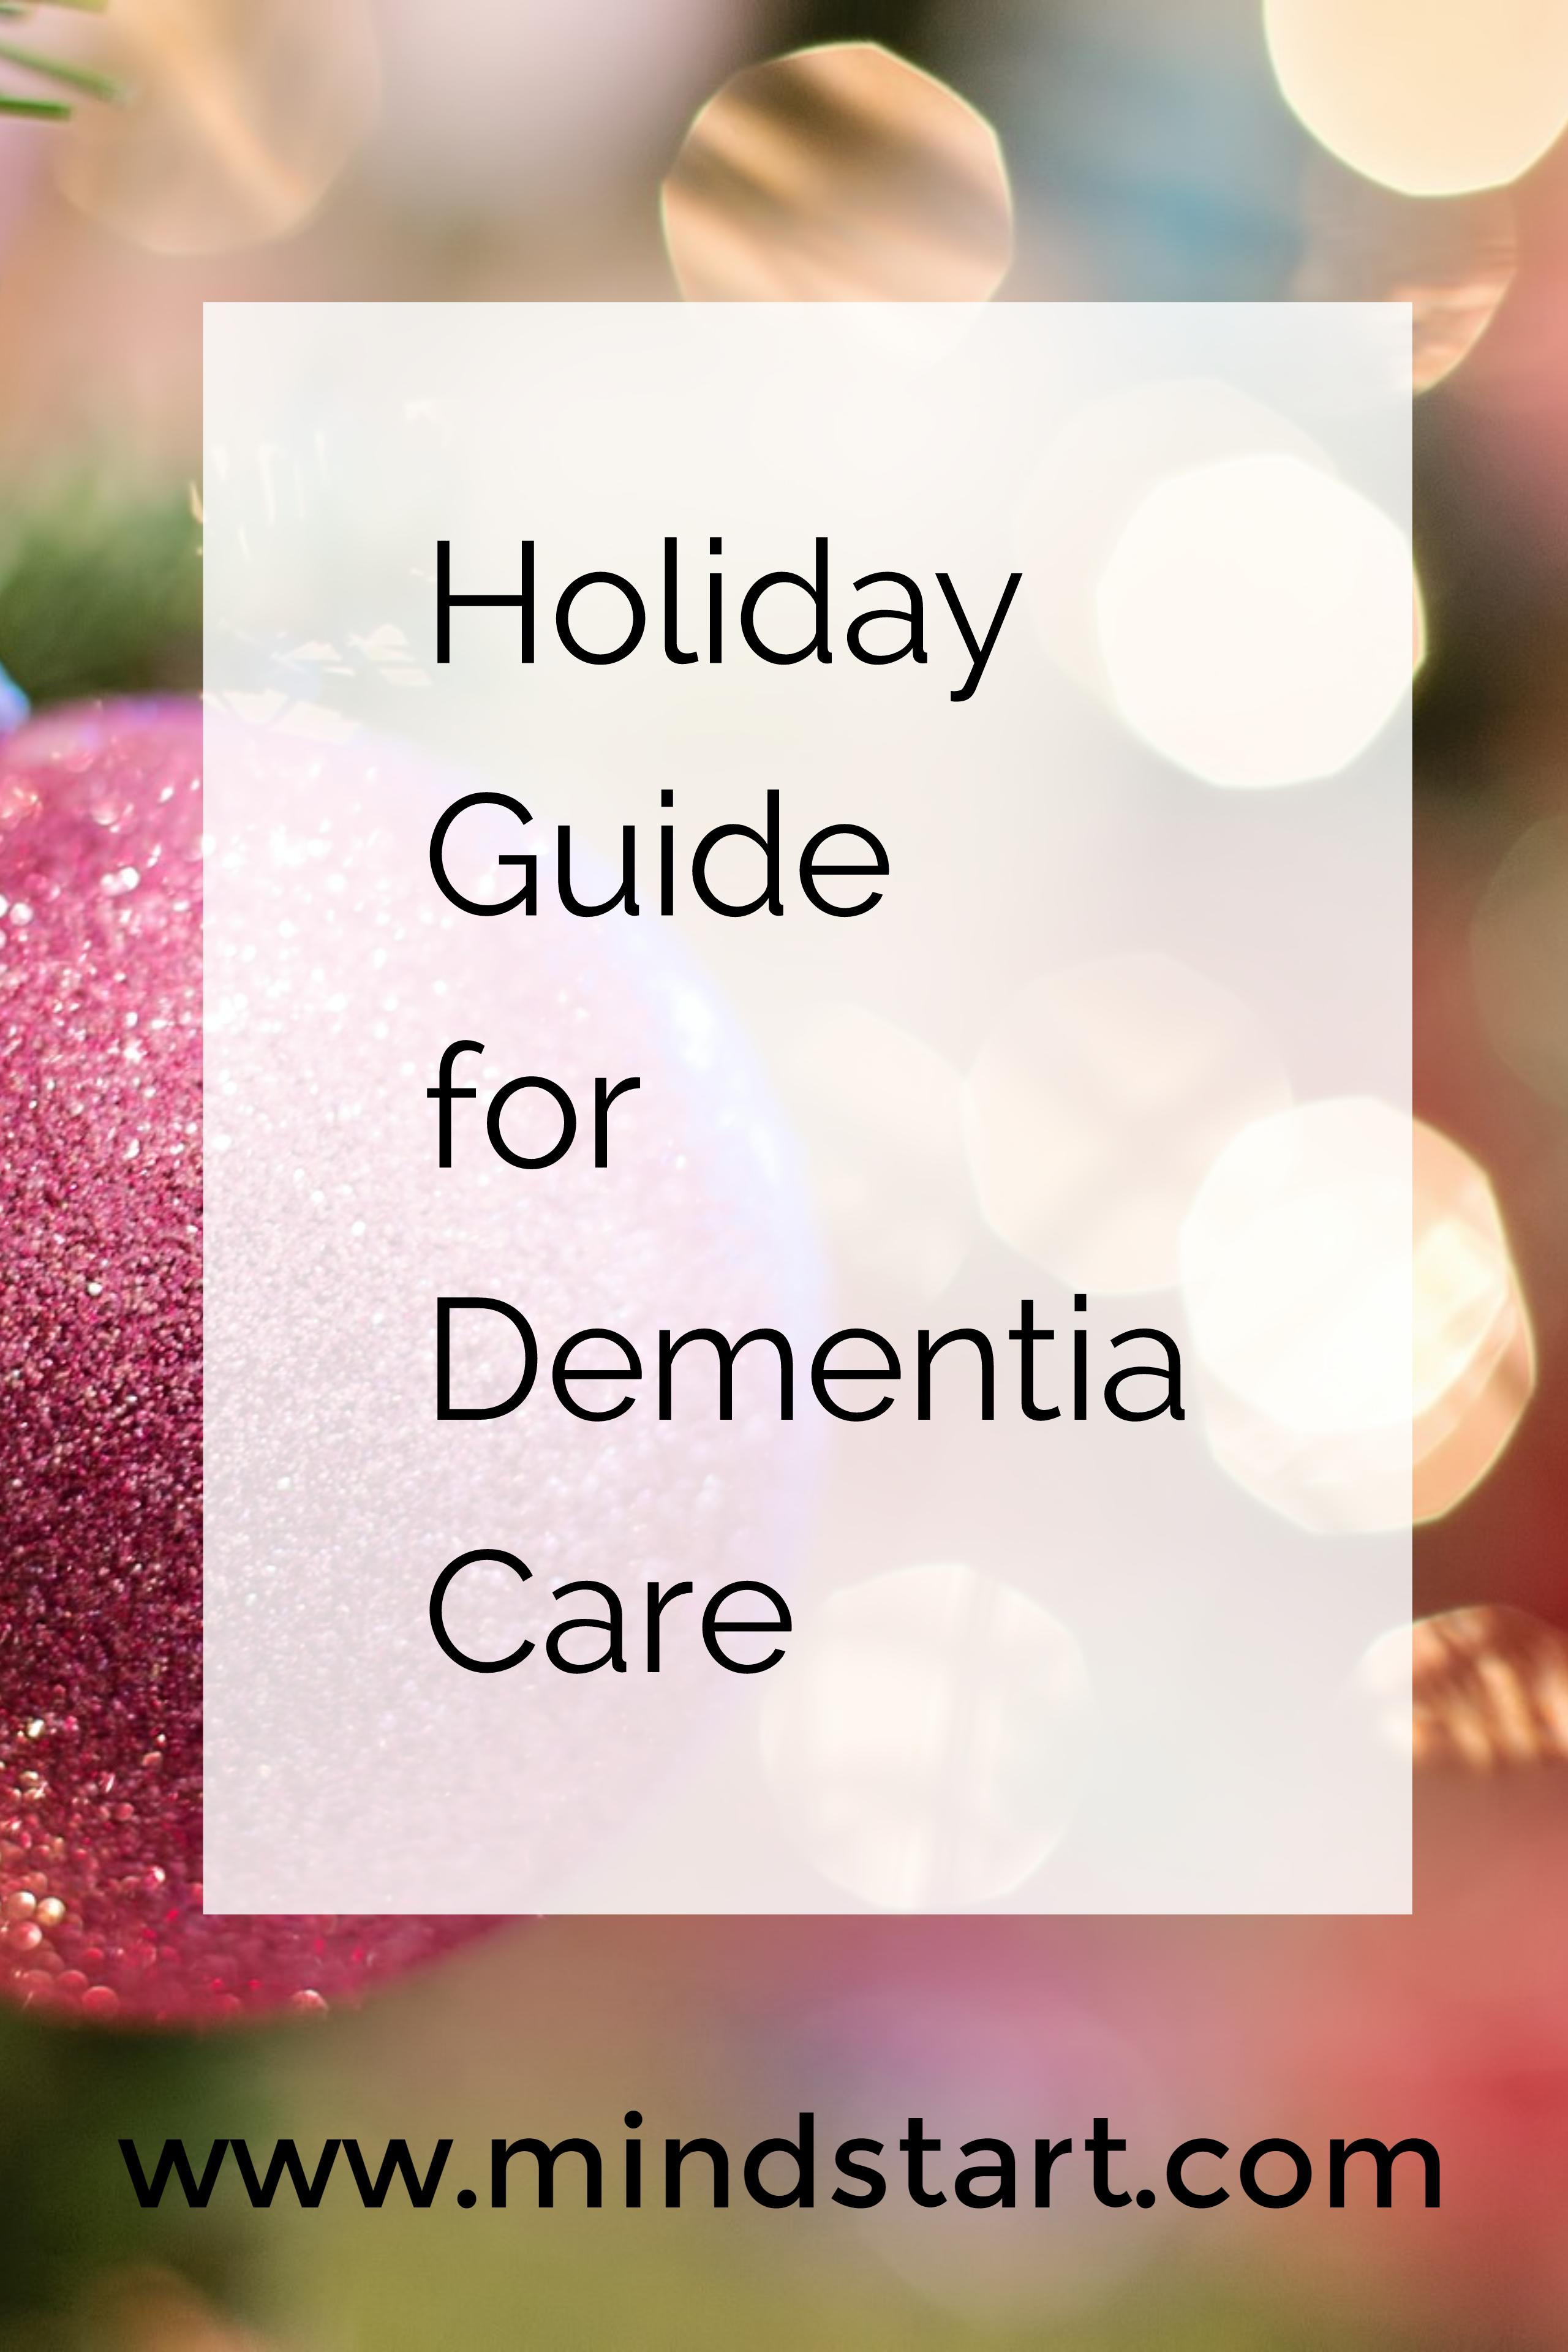 Holiday Guide for Dementia Care